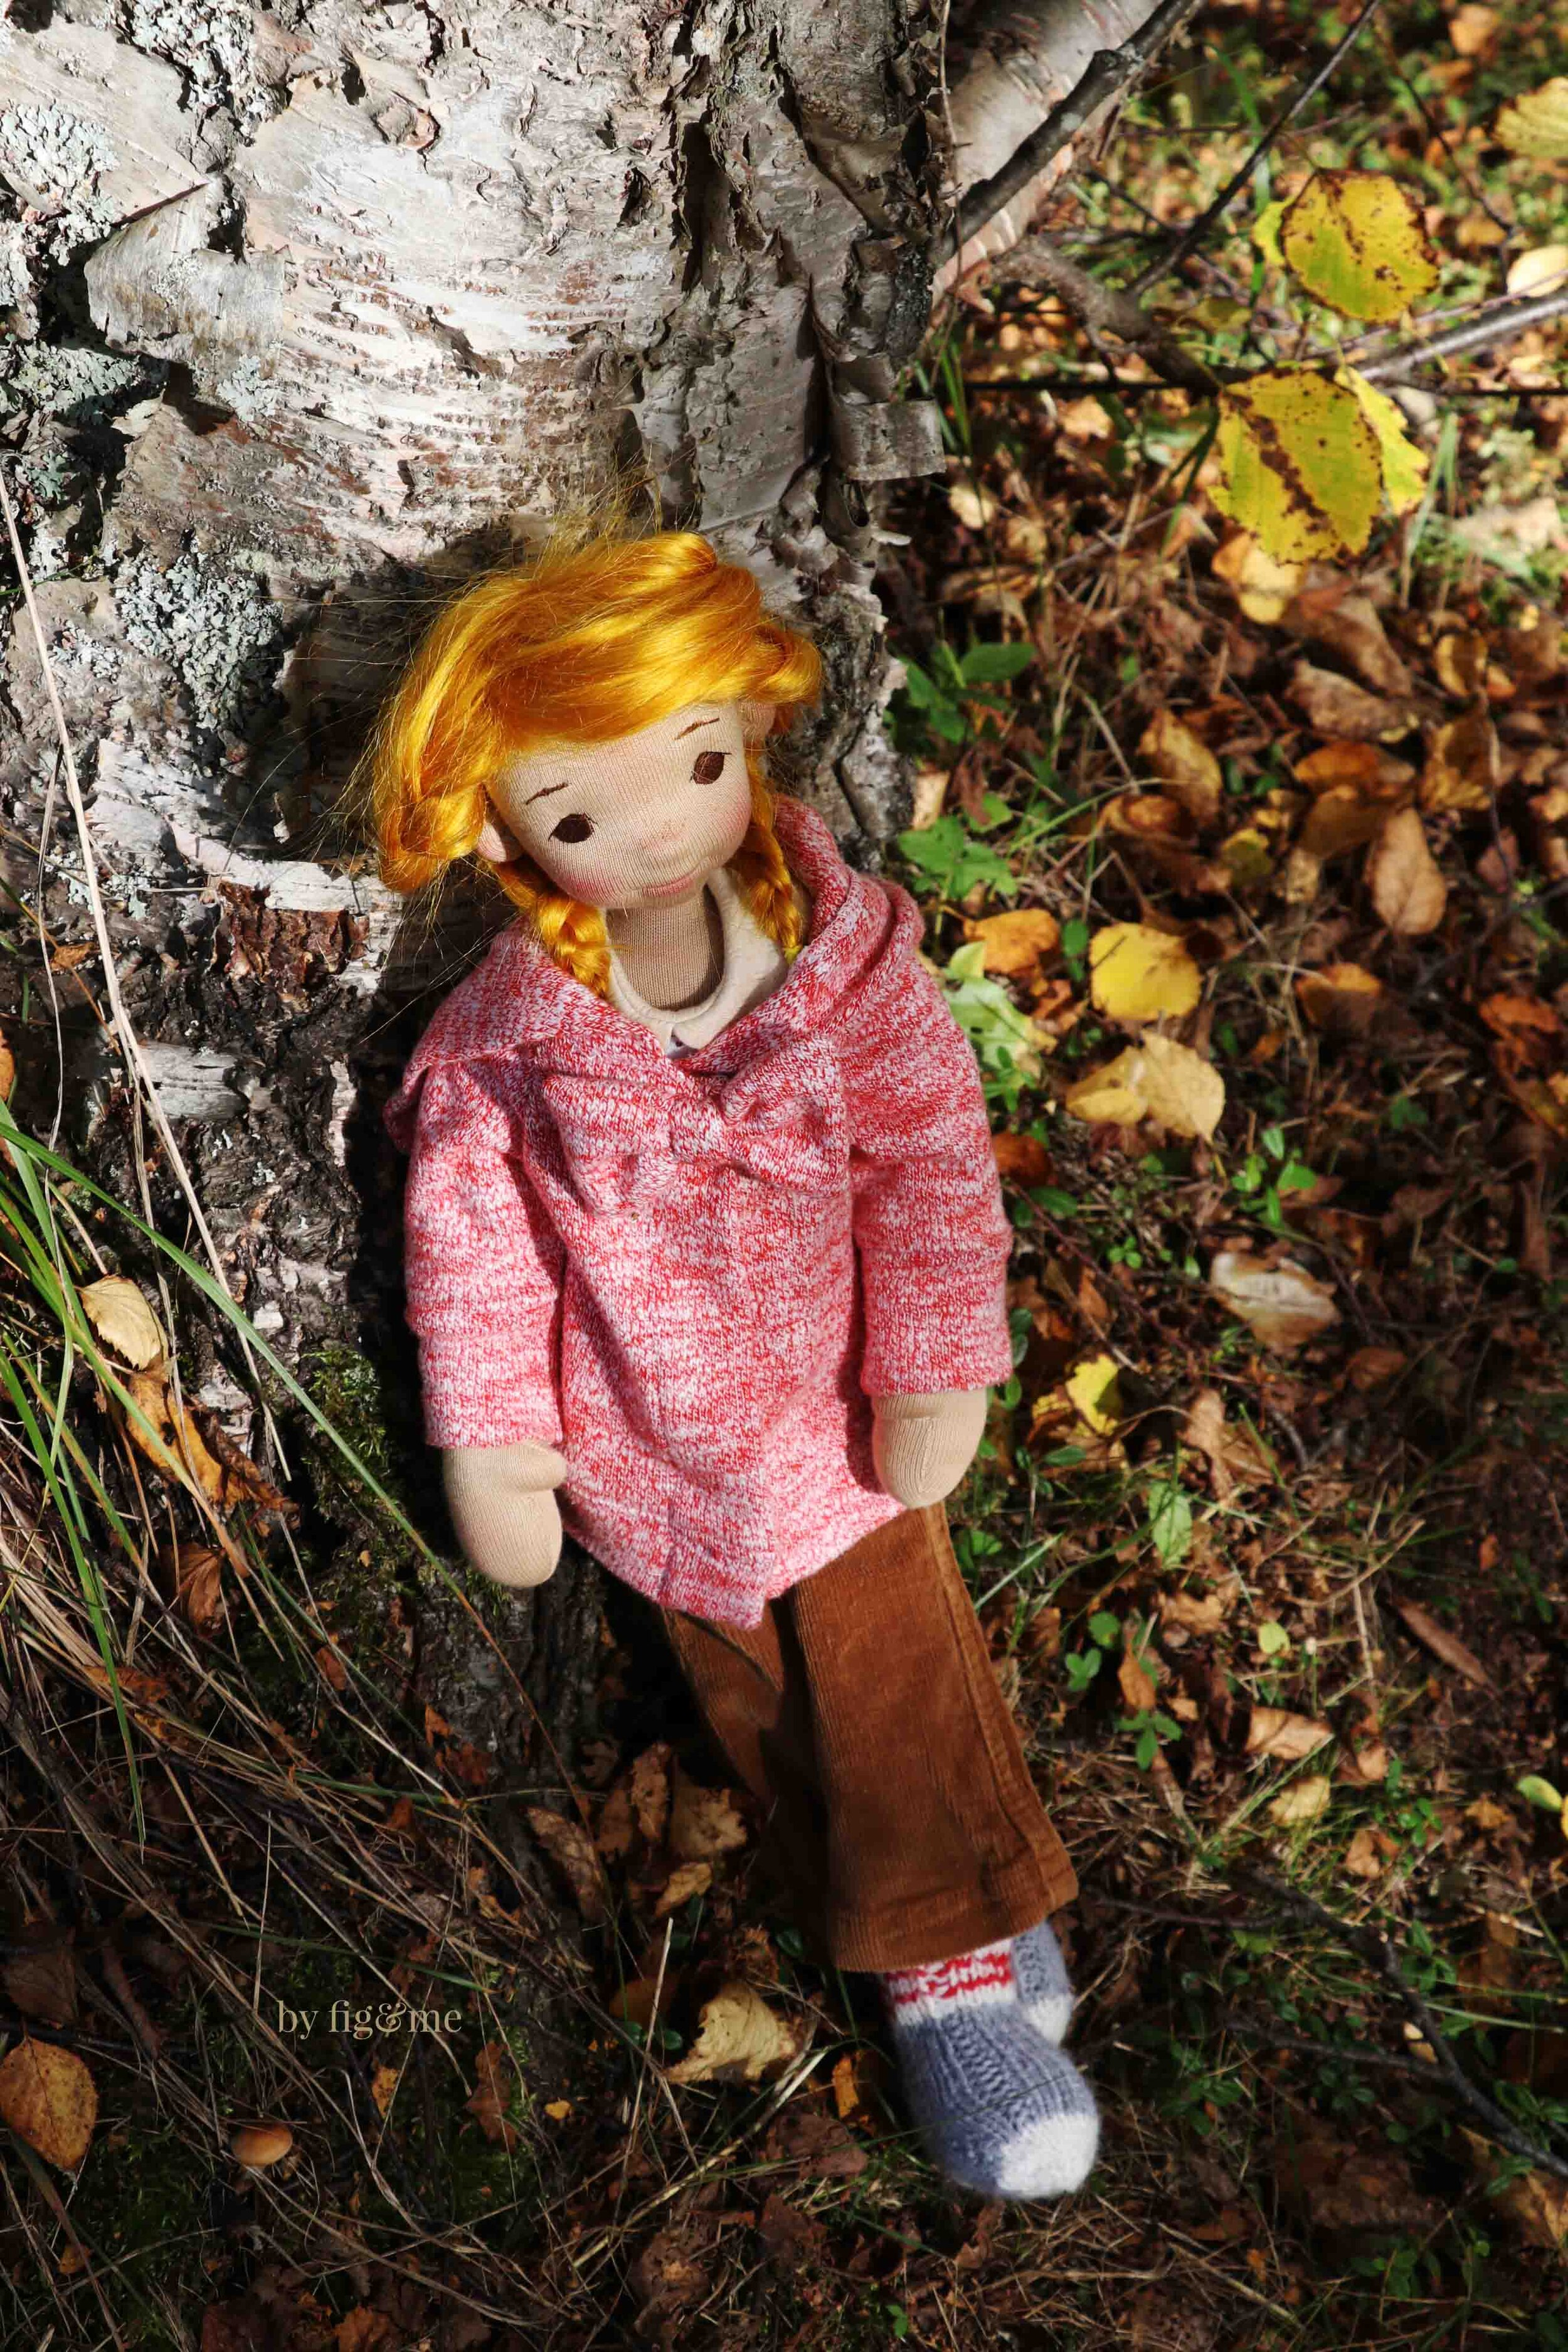 Winona outside, art doll by fig and me